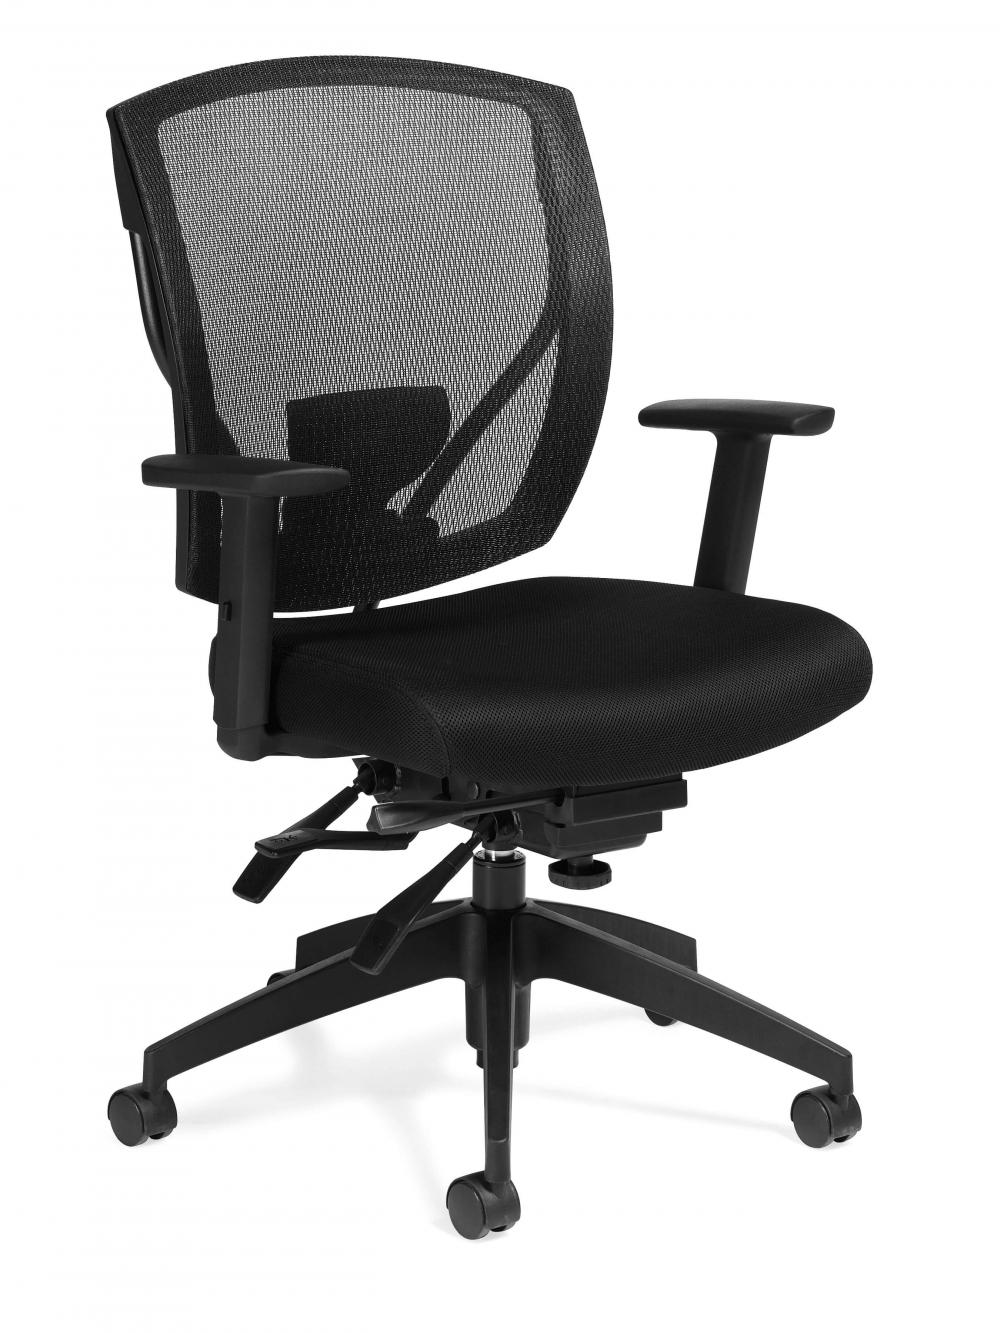 Office furniture chairs mesh chair